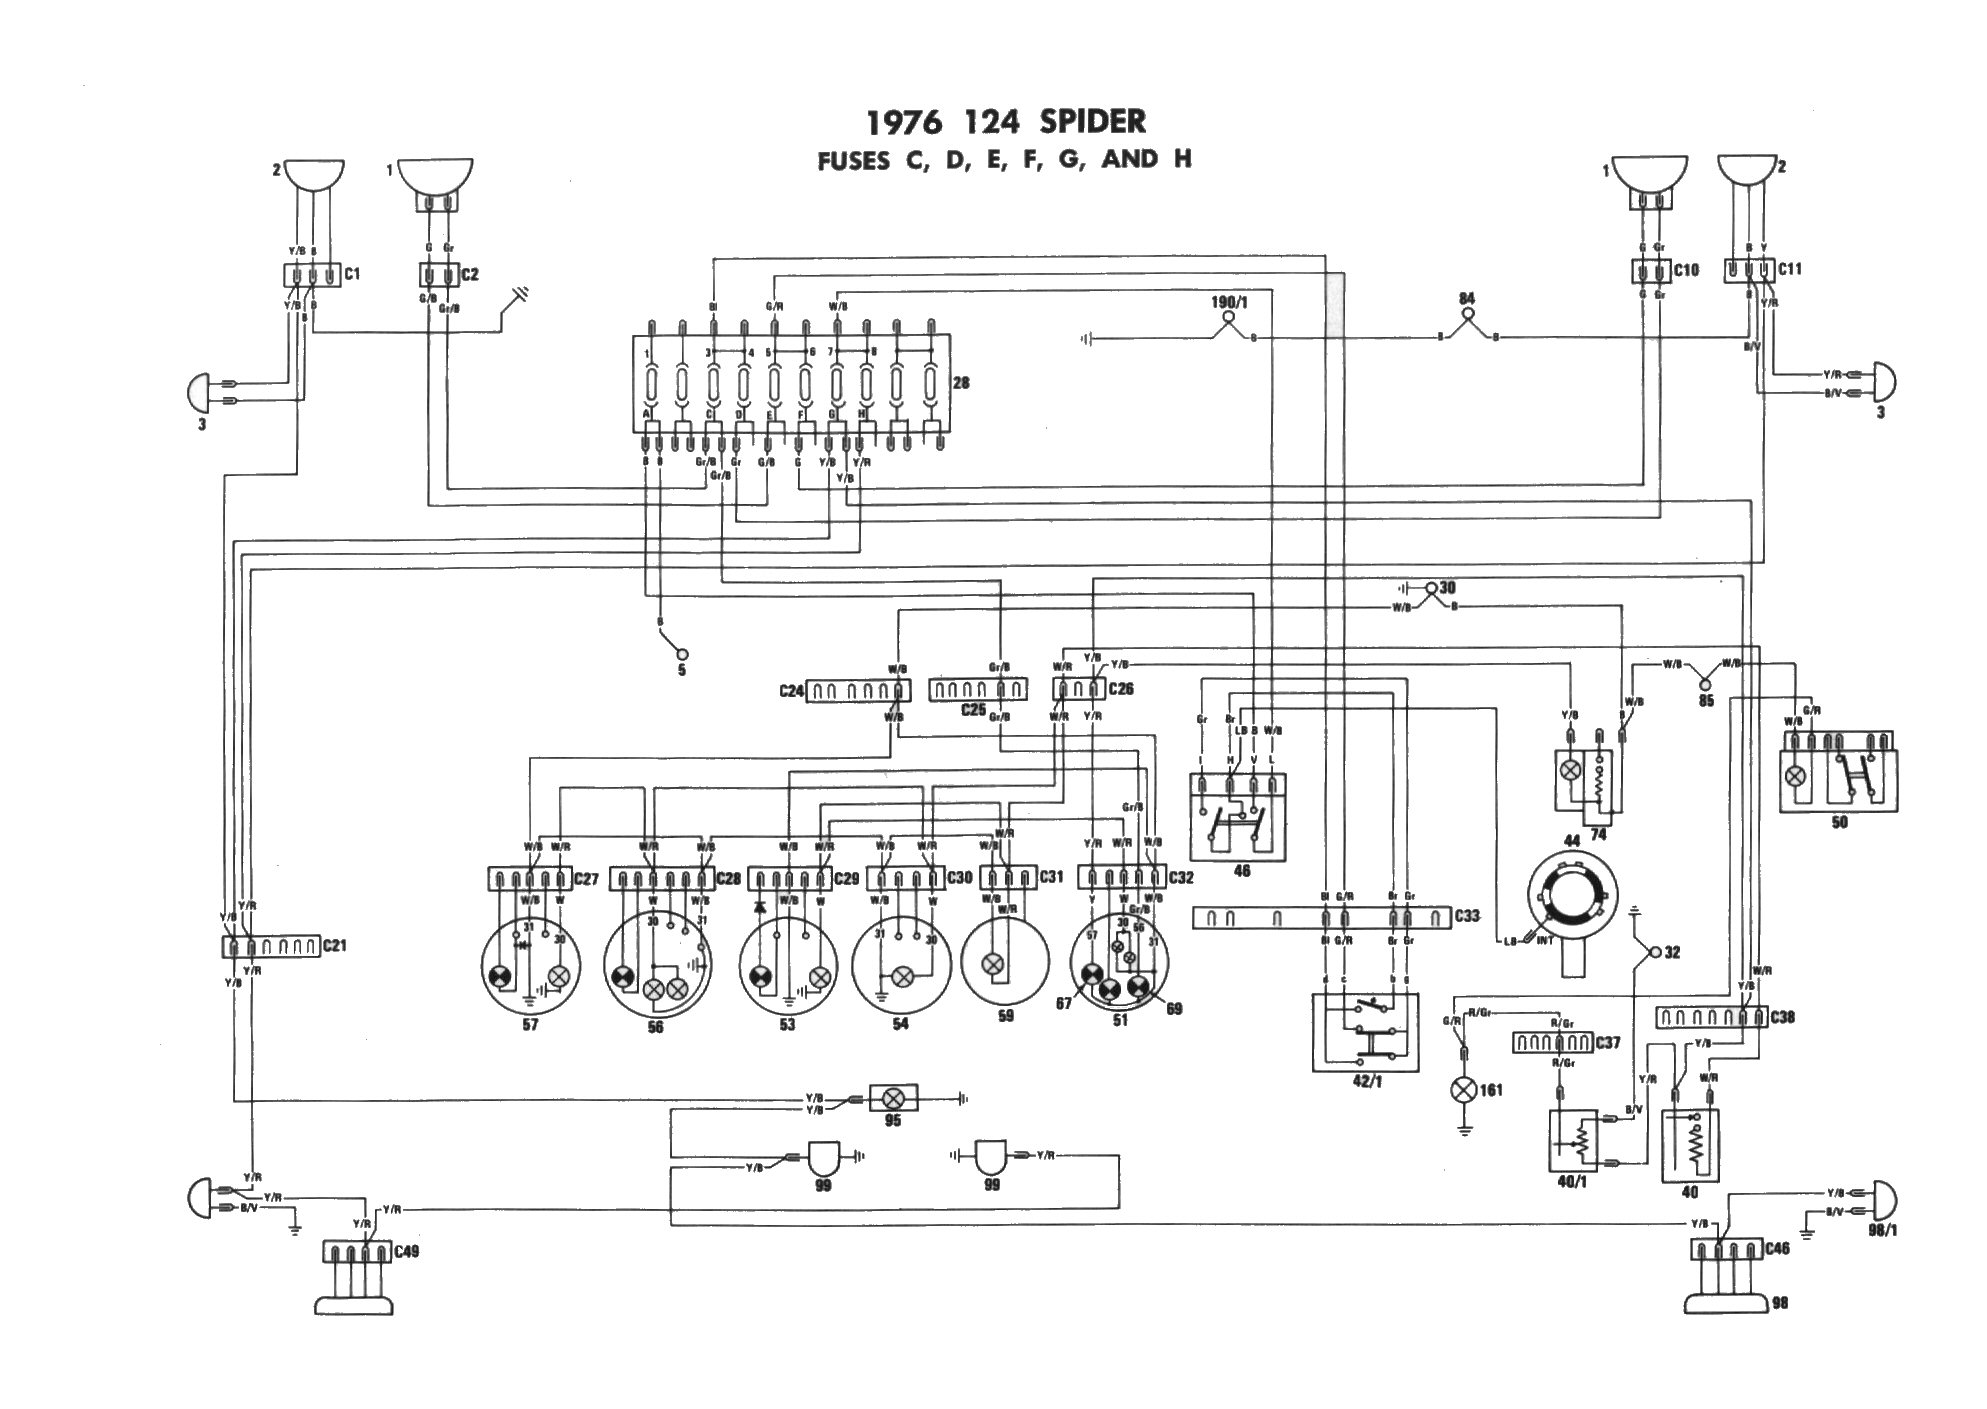 Fiat Wiring Diagram : Fiat spider spidersweb on repeated request